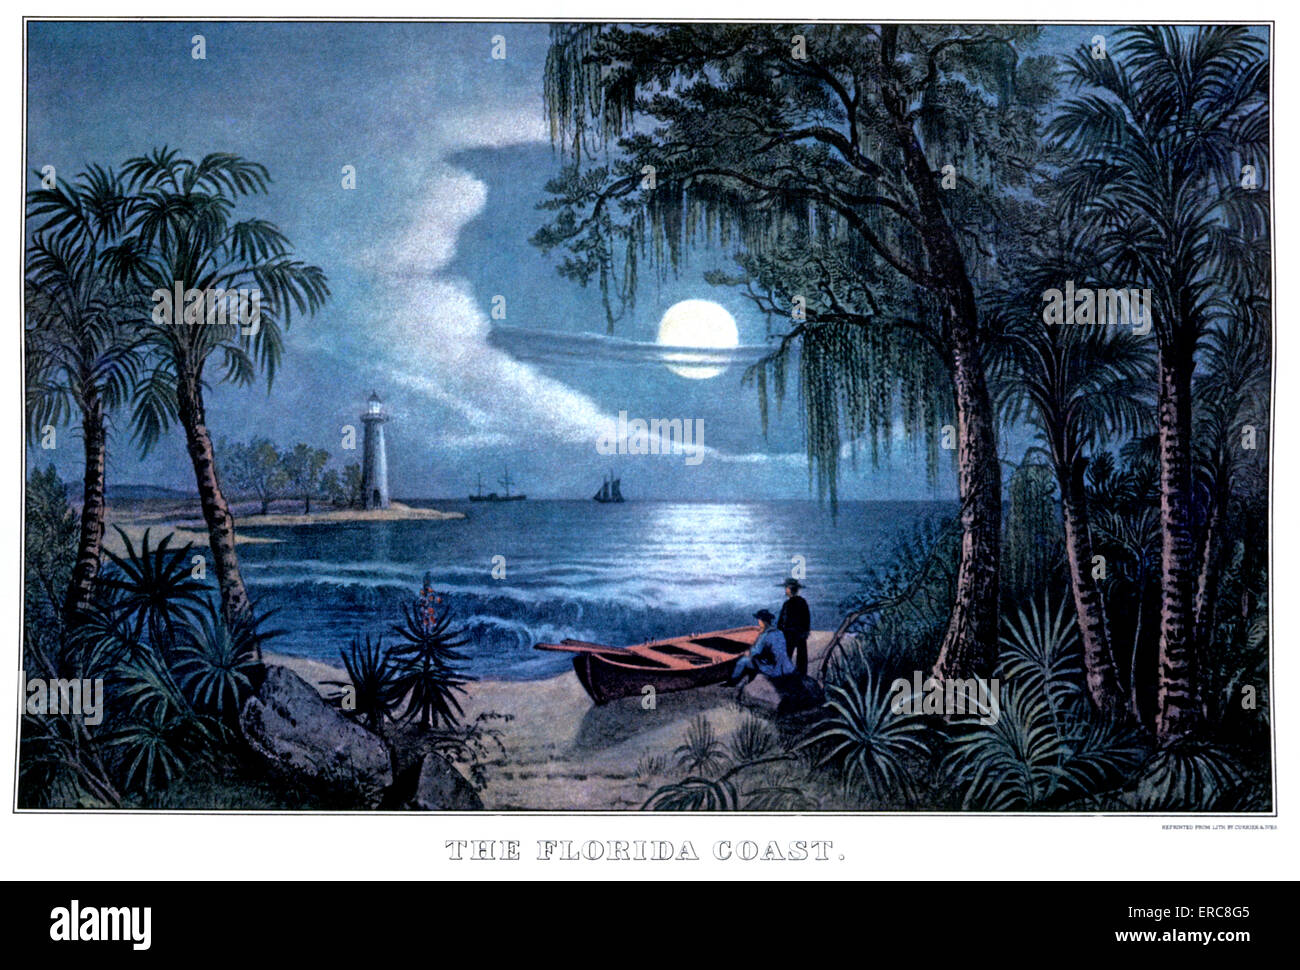 1850s THE FLORIDA COAST - CURRIER & IVES LITHOGRAPH - 1855 - Stock Image